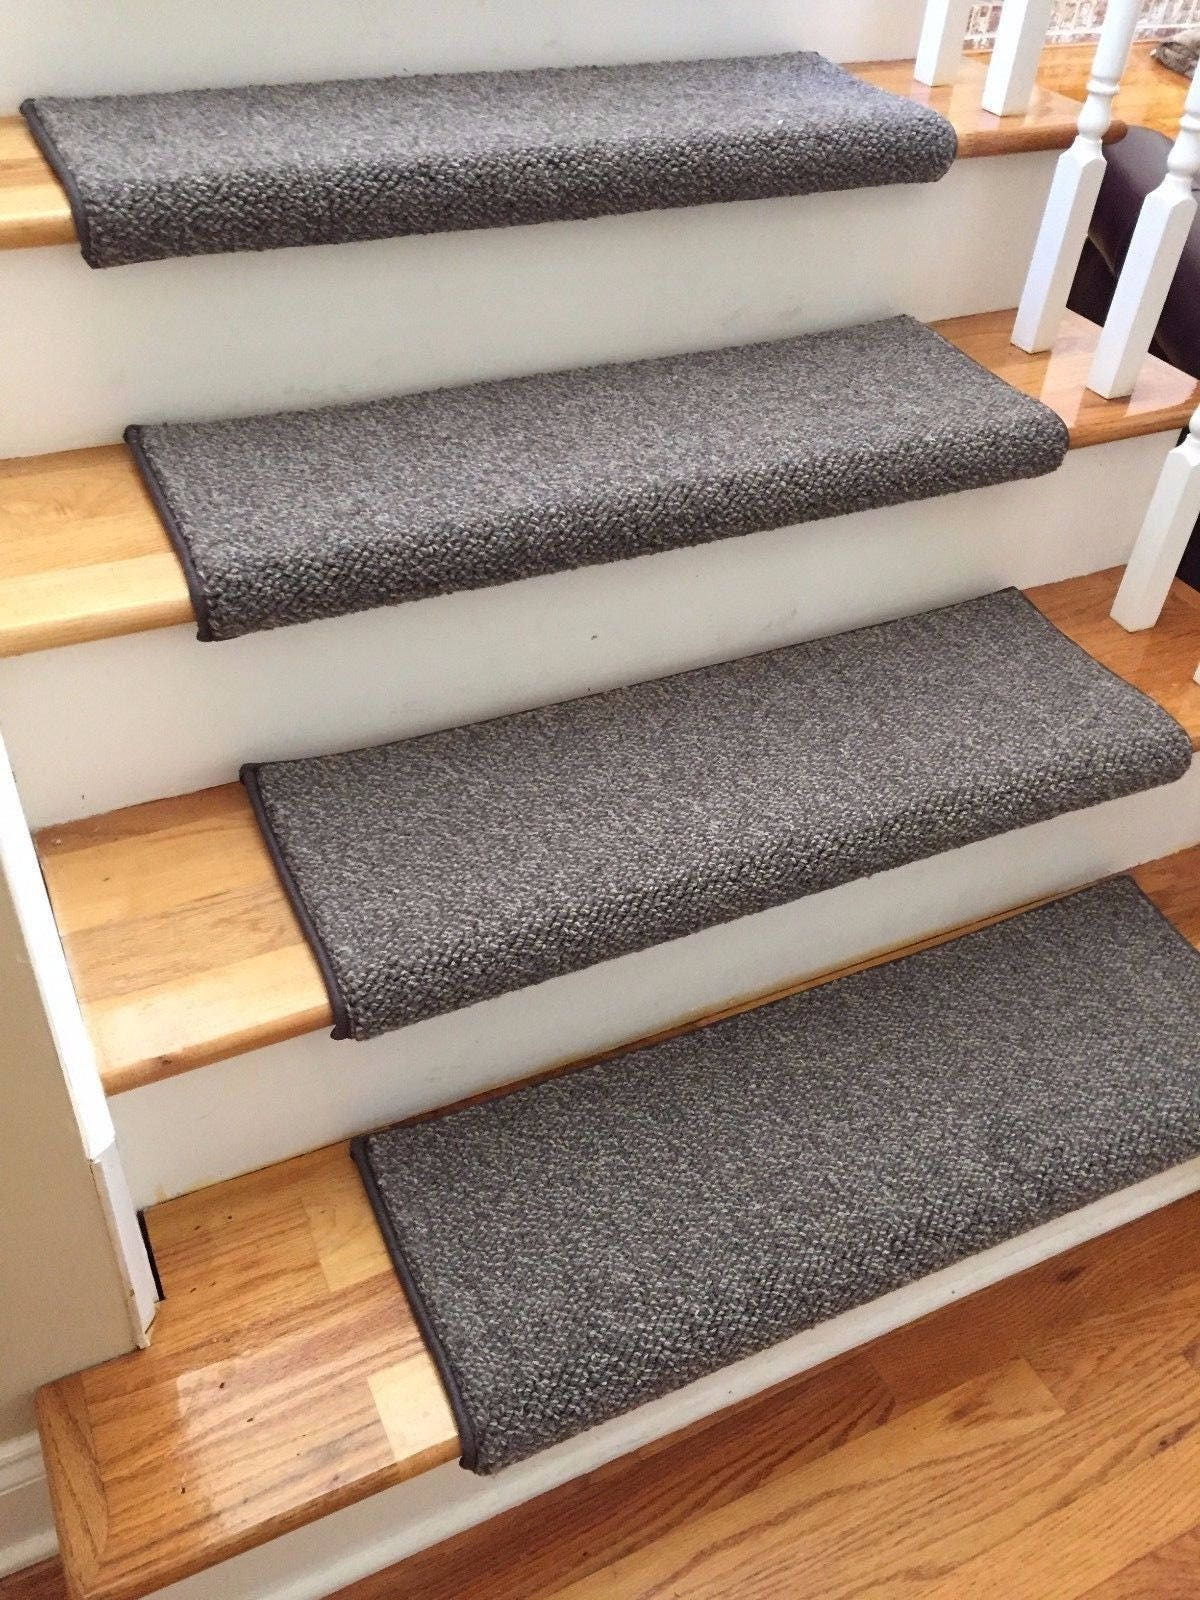 Tweed Granite Dk Brown Ecco Tex Blend New Zealand Wool TRUE Bullnose™  Carpet Stair Tread Runner Replacement Style Comfort Safety(Sold Each)